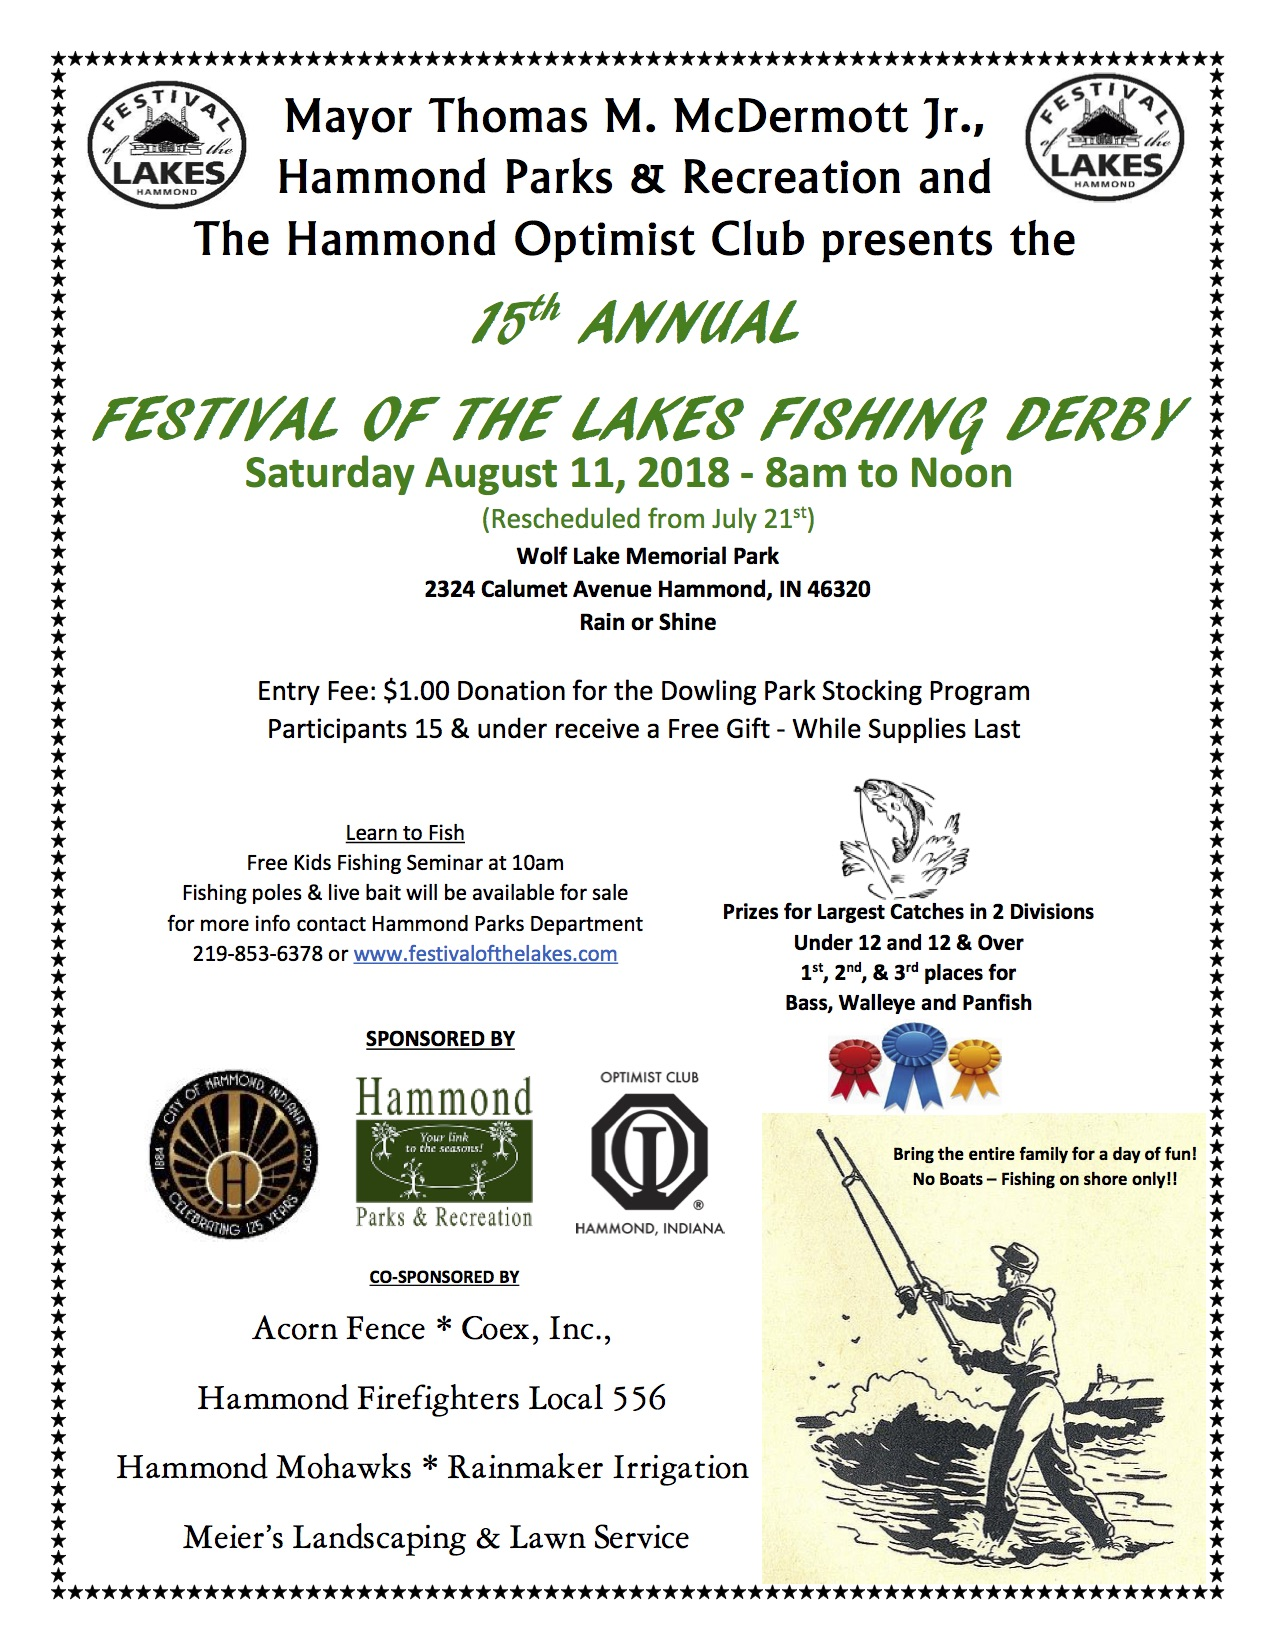 City of Hammond Announces Date of Rescheduled Festival of the Lakes Fishing Derby